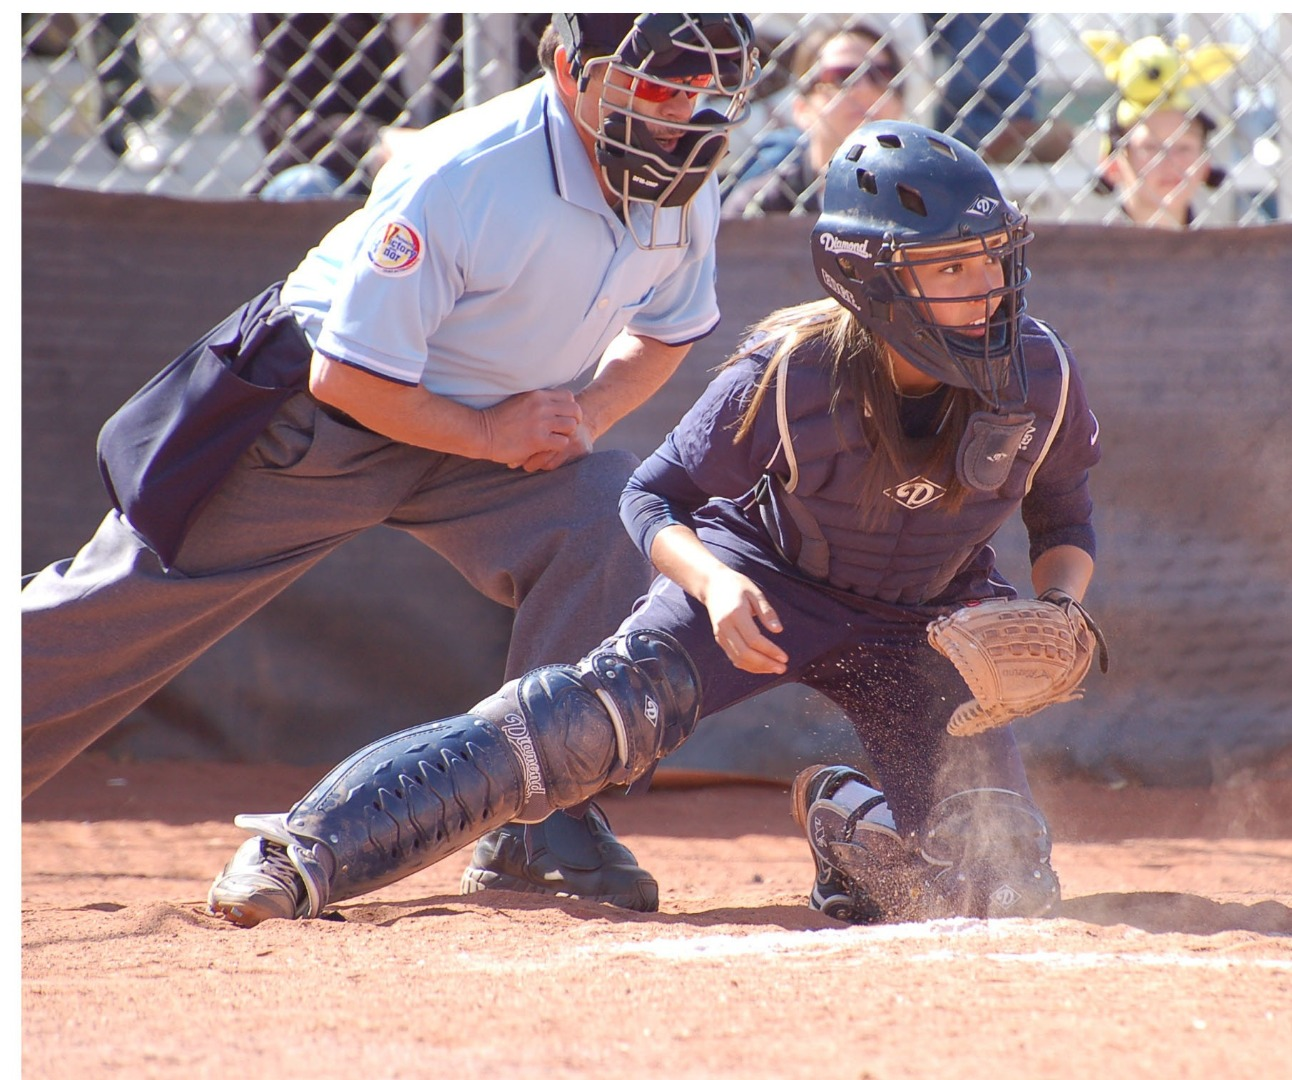 Photo of softball catcher kneeling at home plate